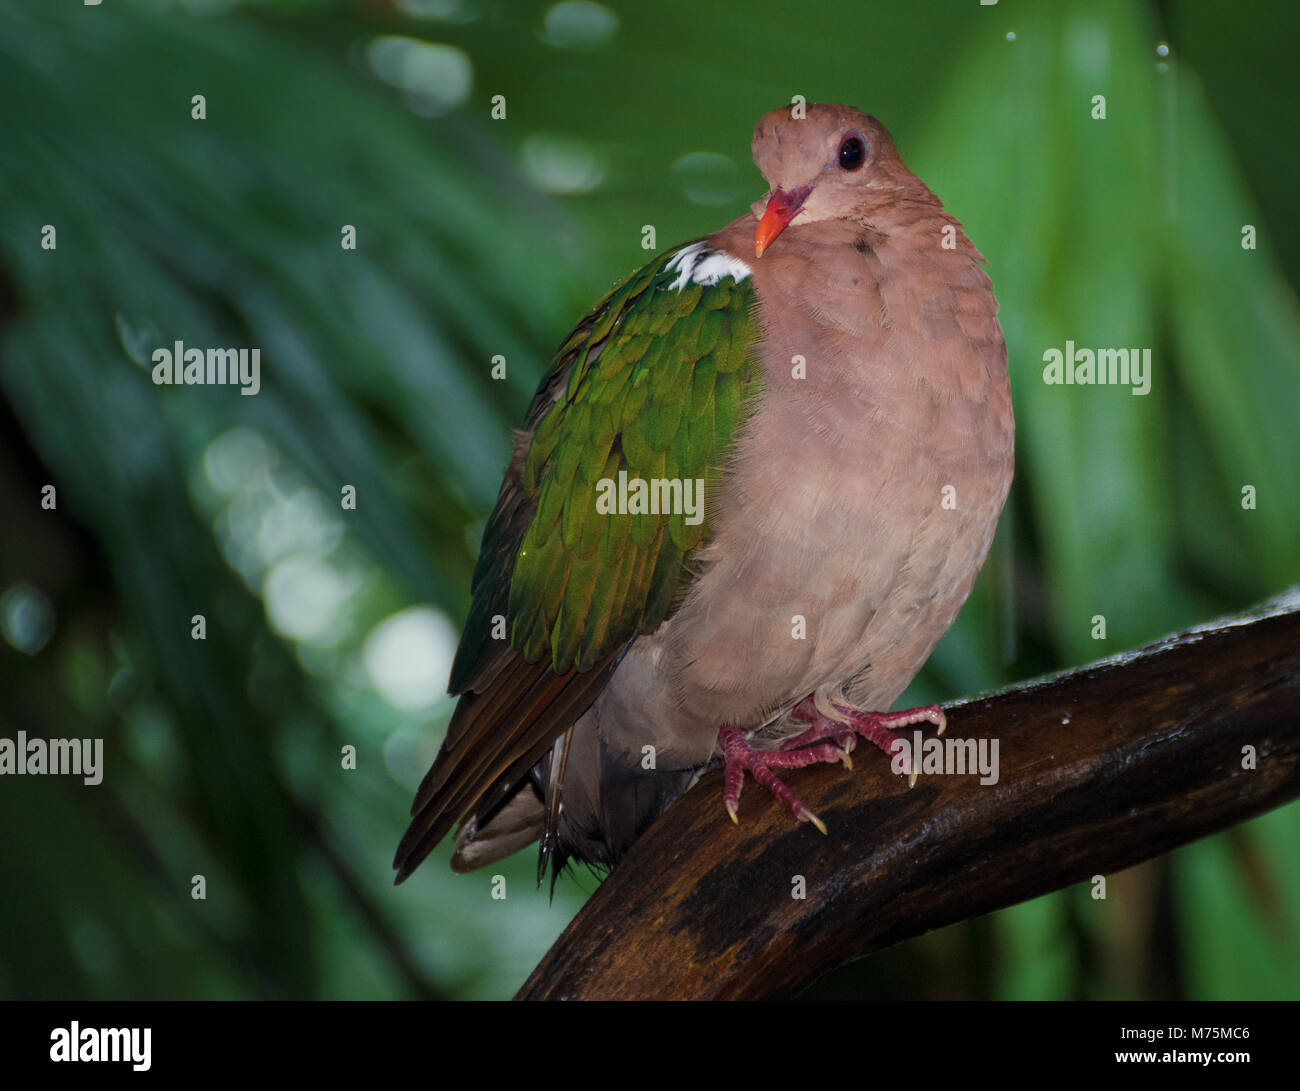 A wet Wompoo Fruit Dove (Ptilinopus magnificus), or  wompoo pigeon, from New Guinea sits on a rainforest branch - Stock Image